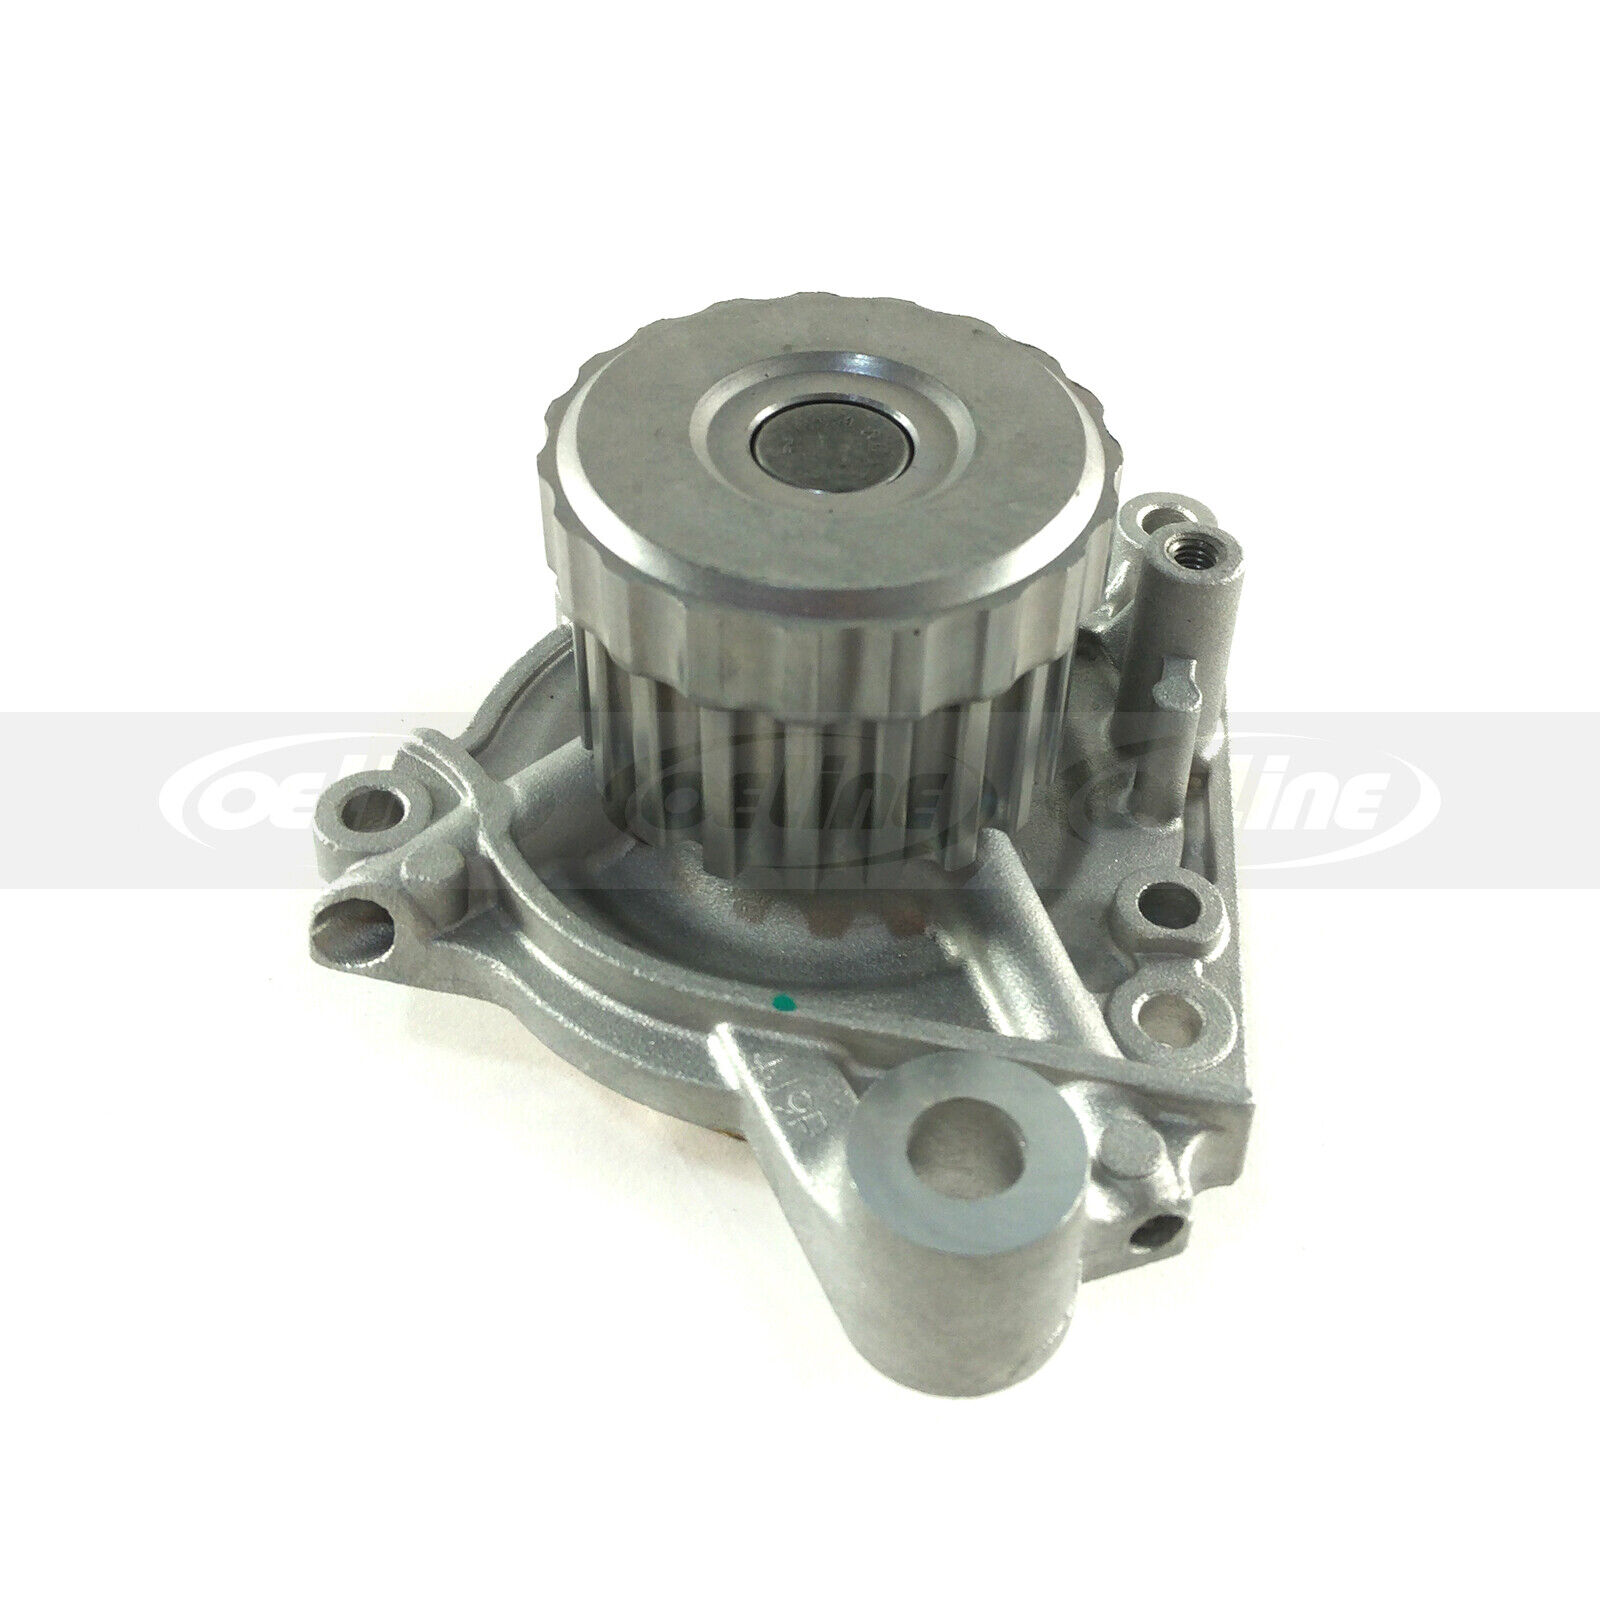 Water Pump For 01-05 Honda Civic Acura 1.7L L4 SOHC Engine